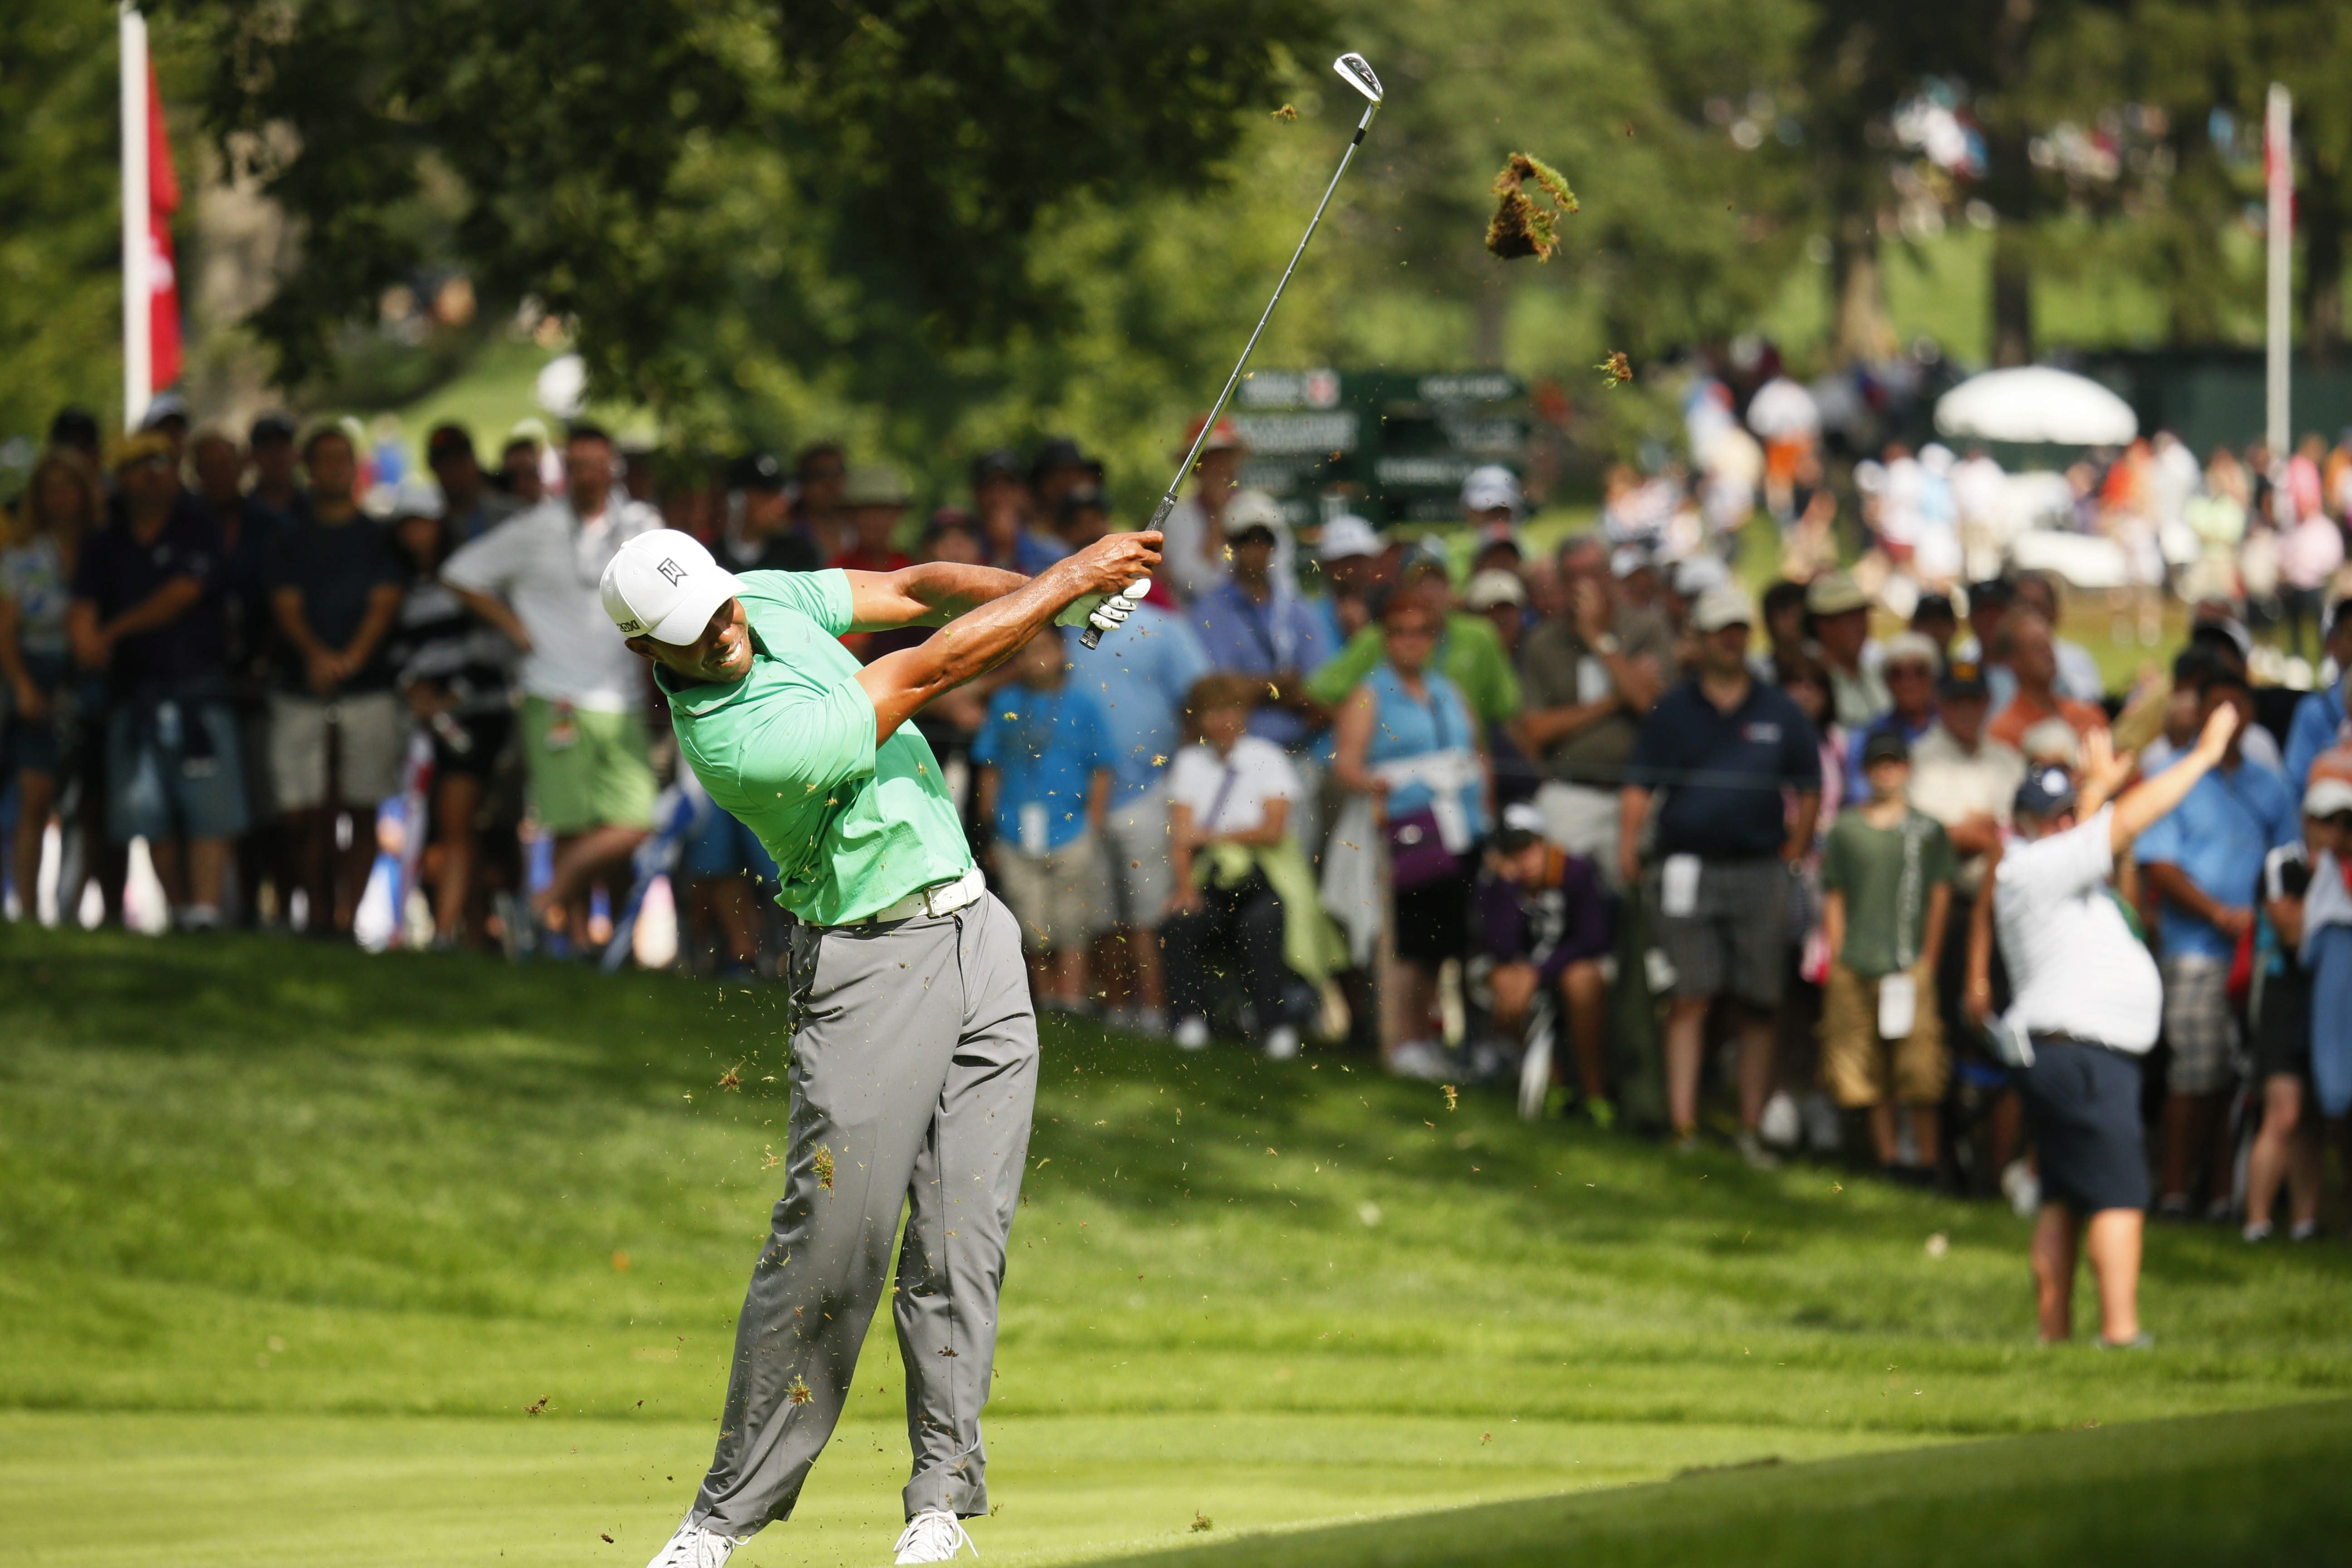 Tiger Woods needs to put together a really good weekend in order to overcome a 10-shot deficit.